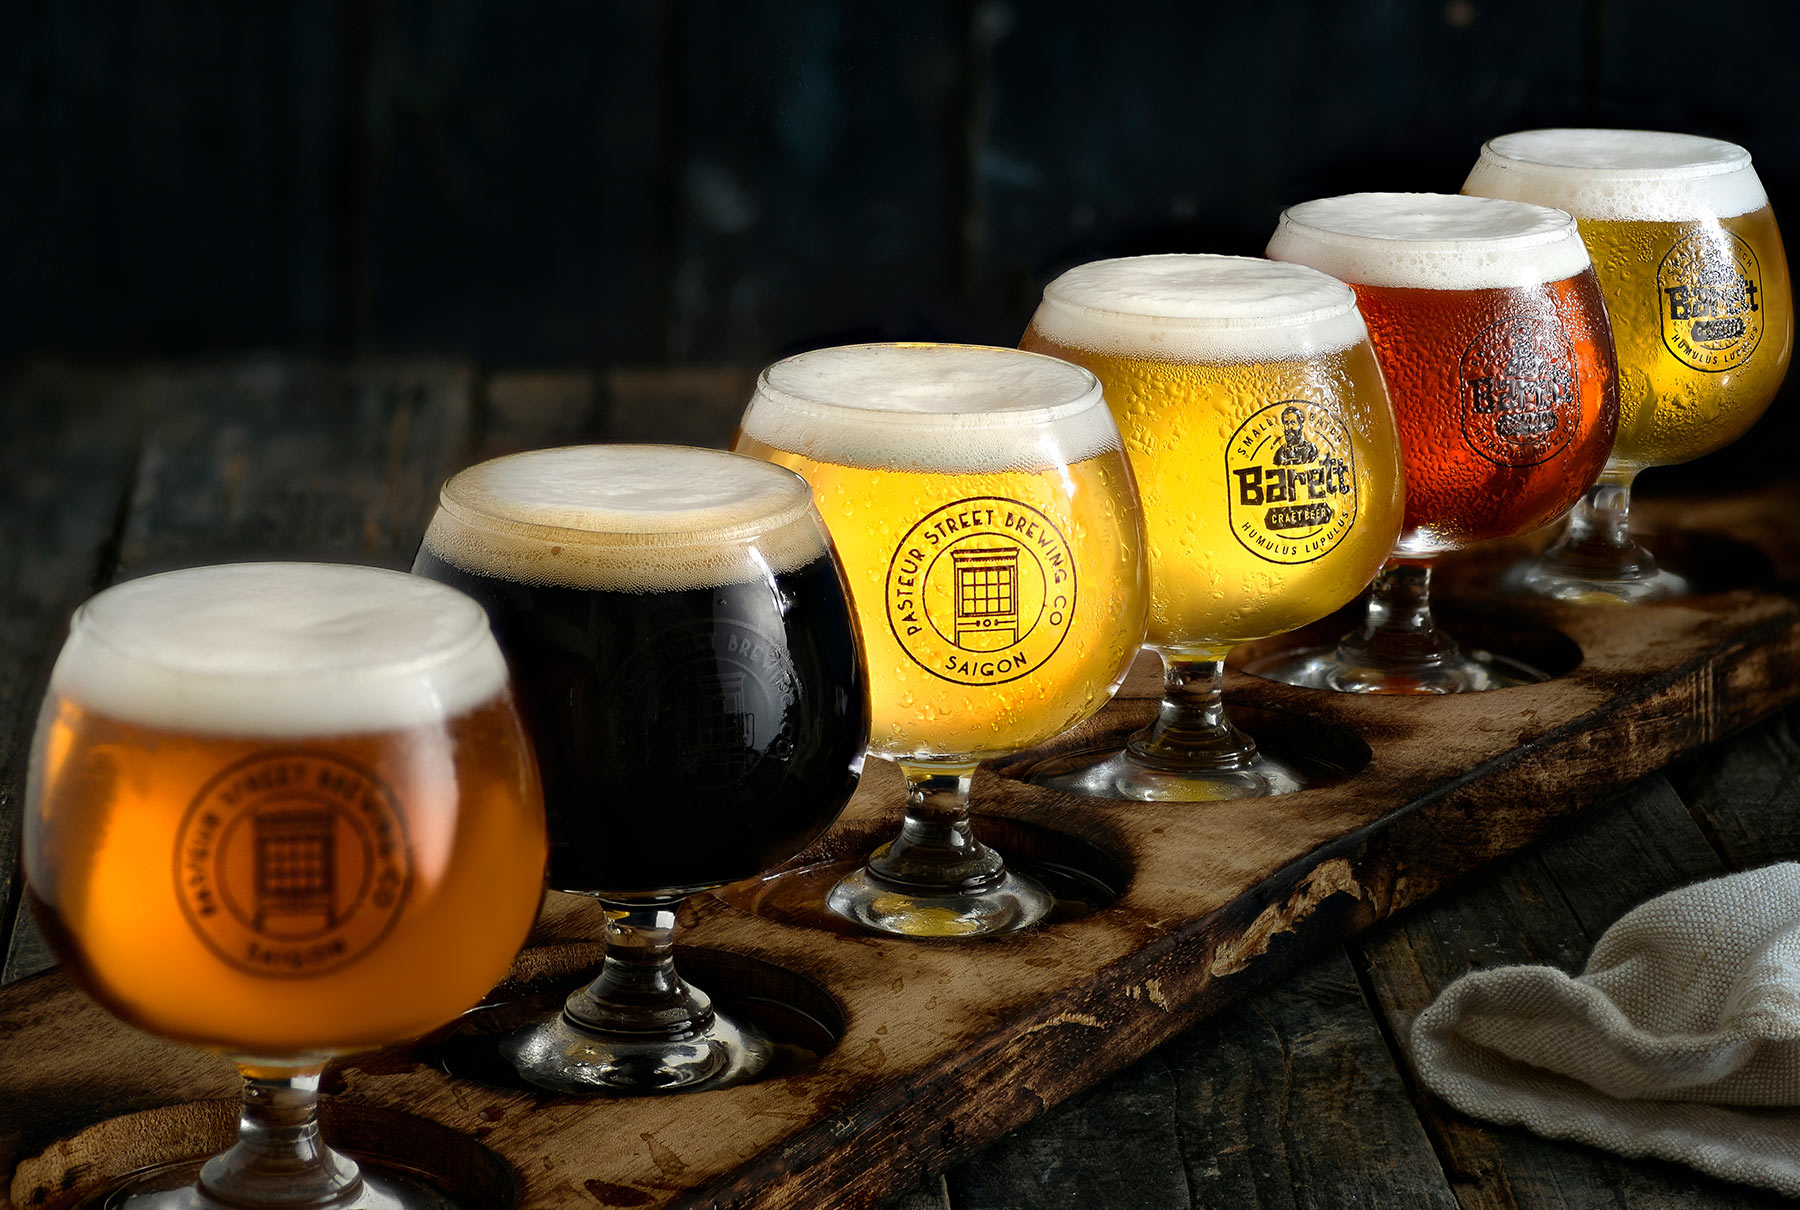 How Many Bubbles Are In A Glass of Beer?